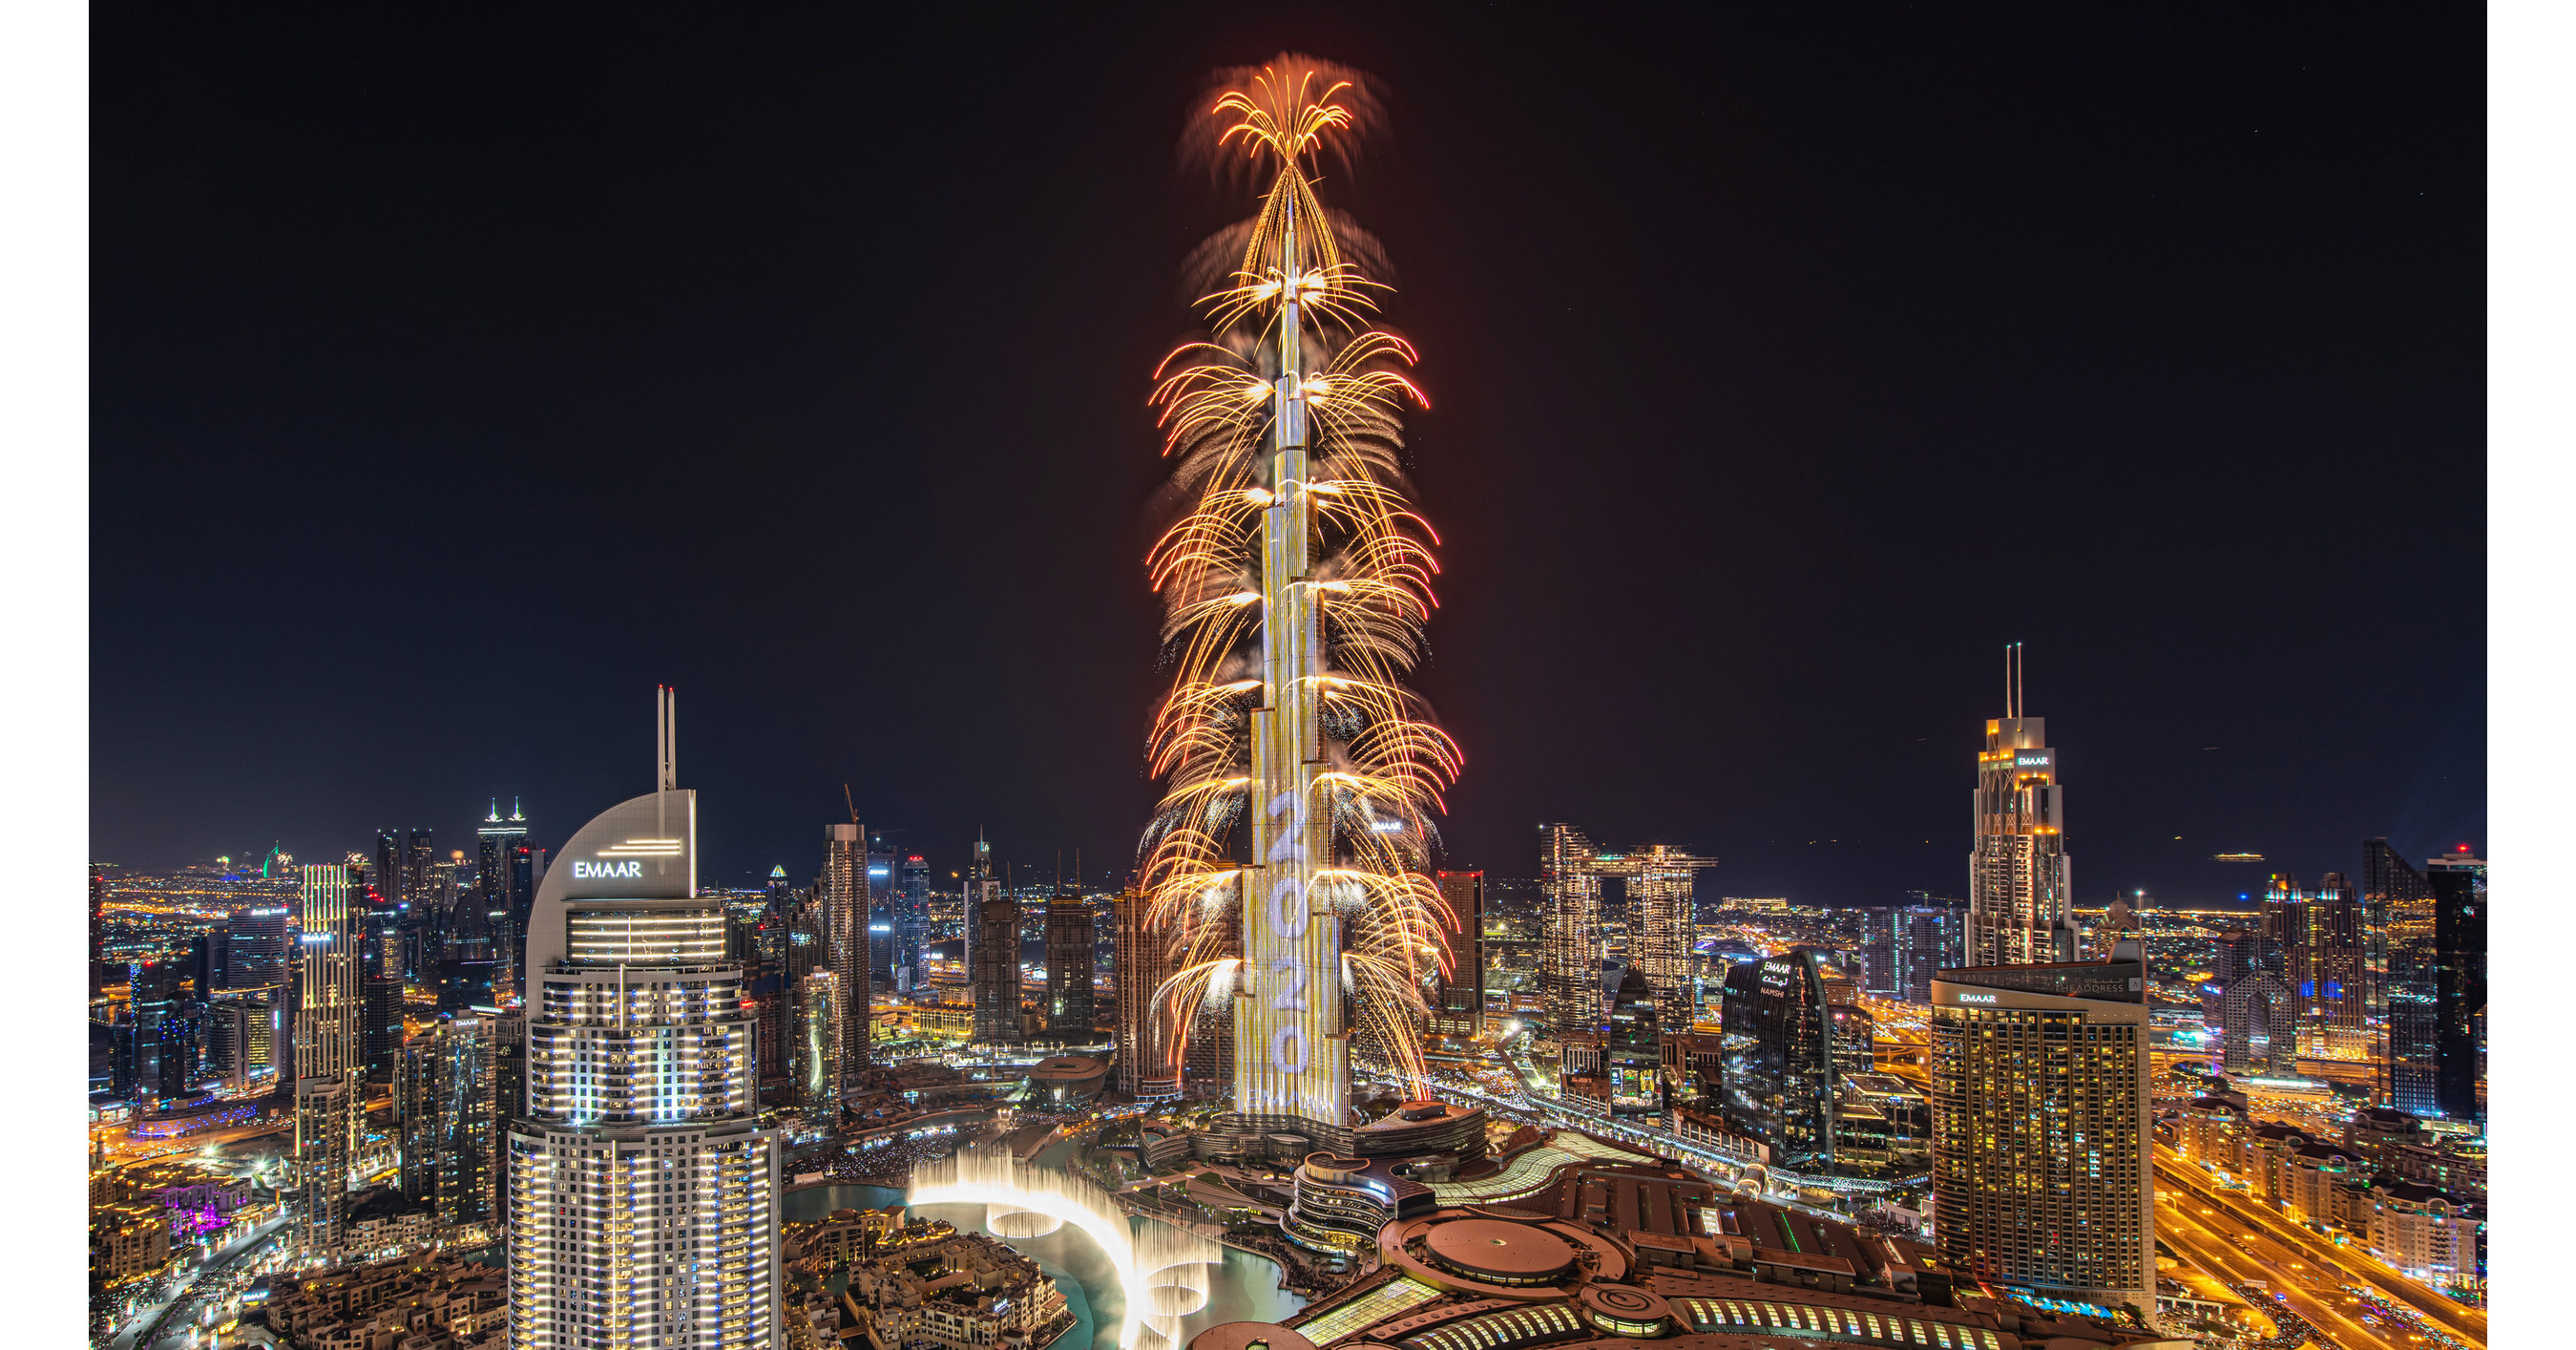 The World S Tallest Building Burj Khalifa Captivates The Globe With Emaar S Spectacular New Year S Eve Show In Downtown Dubai